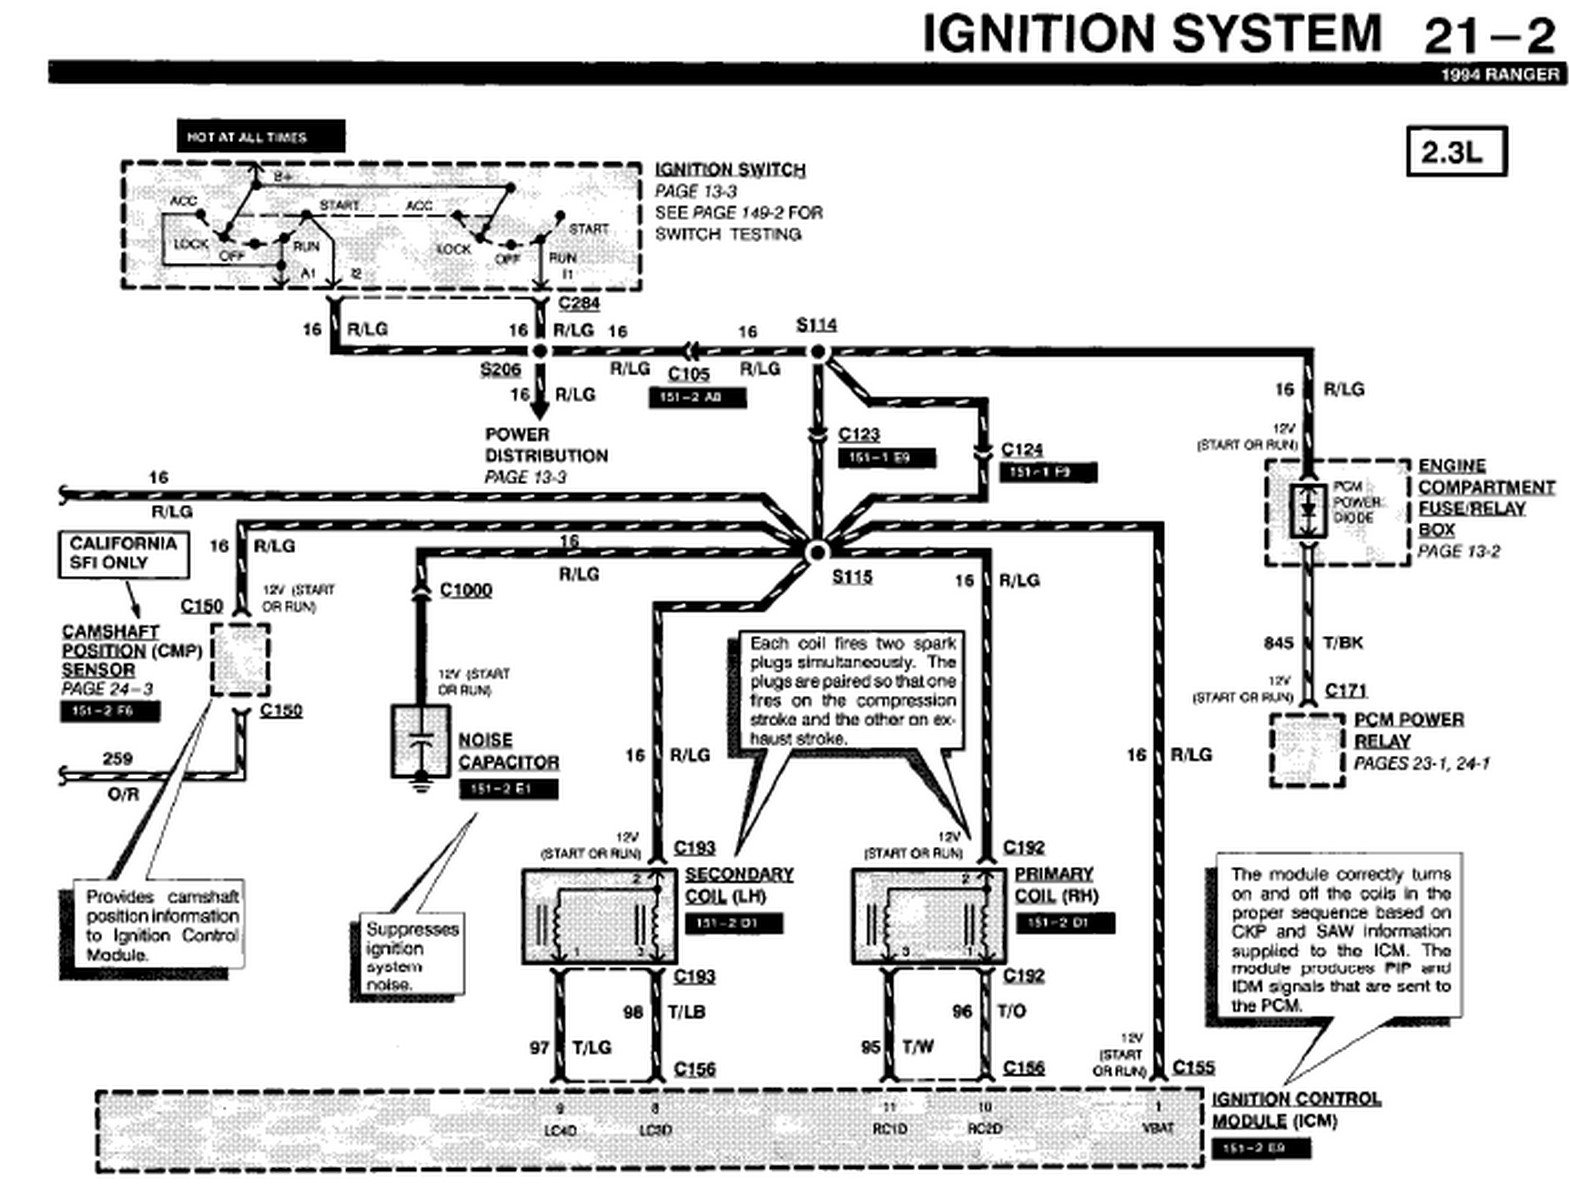 2010 04 16_204643_94_Ranger_Ignition_system_wiring_diagram2 2015 ford explorer wiring diagram 2015 ford explorer body \u2022 wiring 96 ford explorer wiring diagram at bayanpartner.co